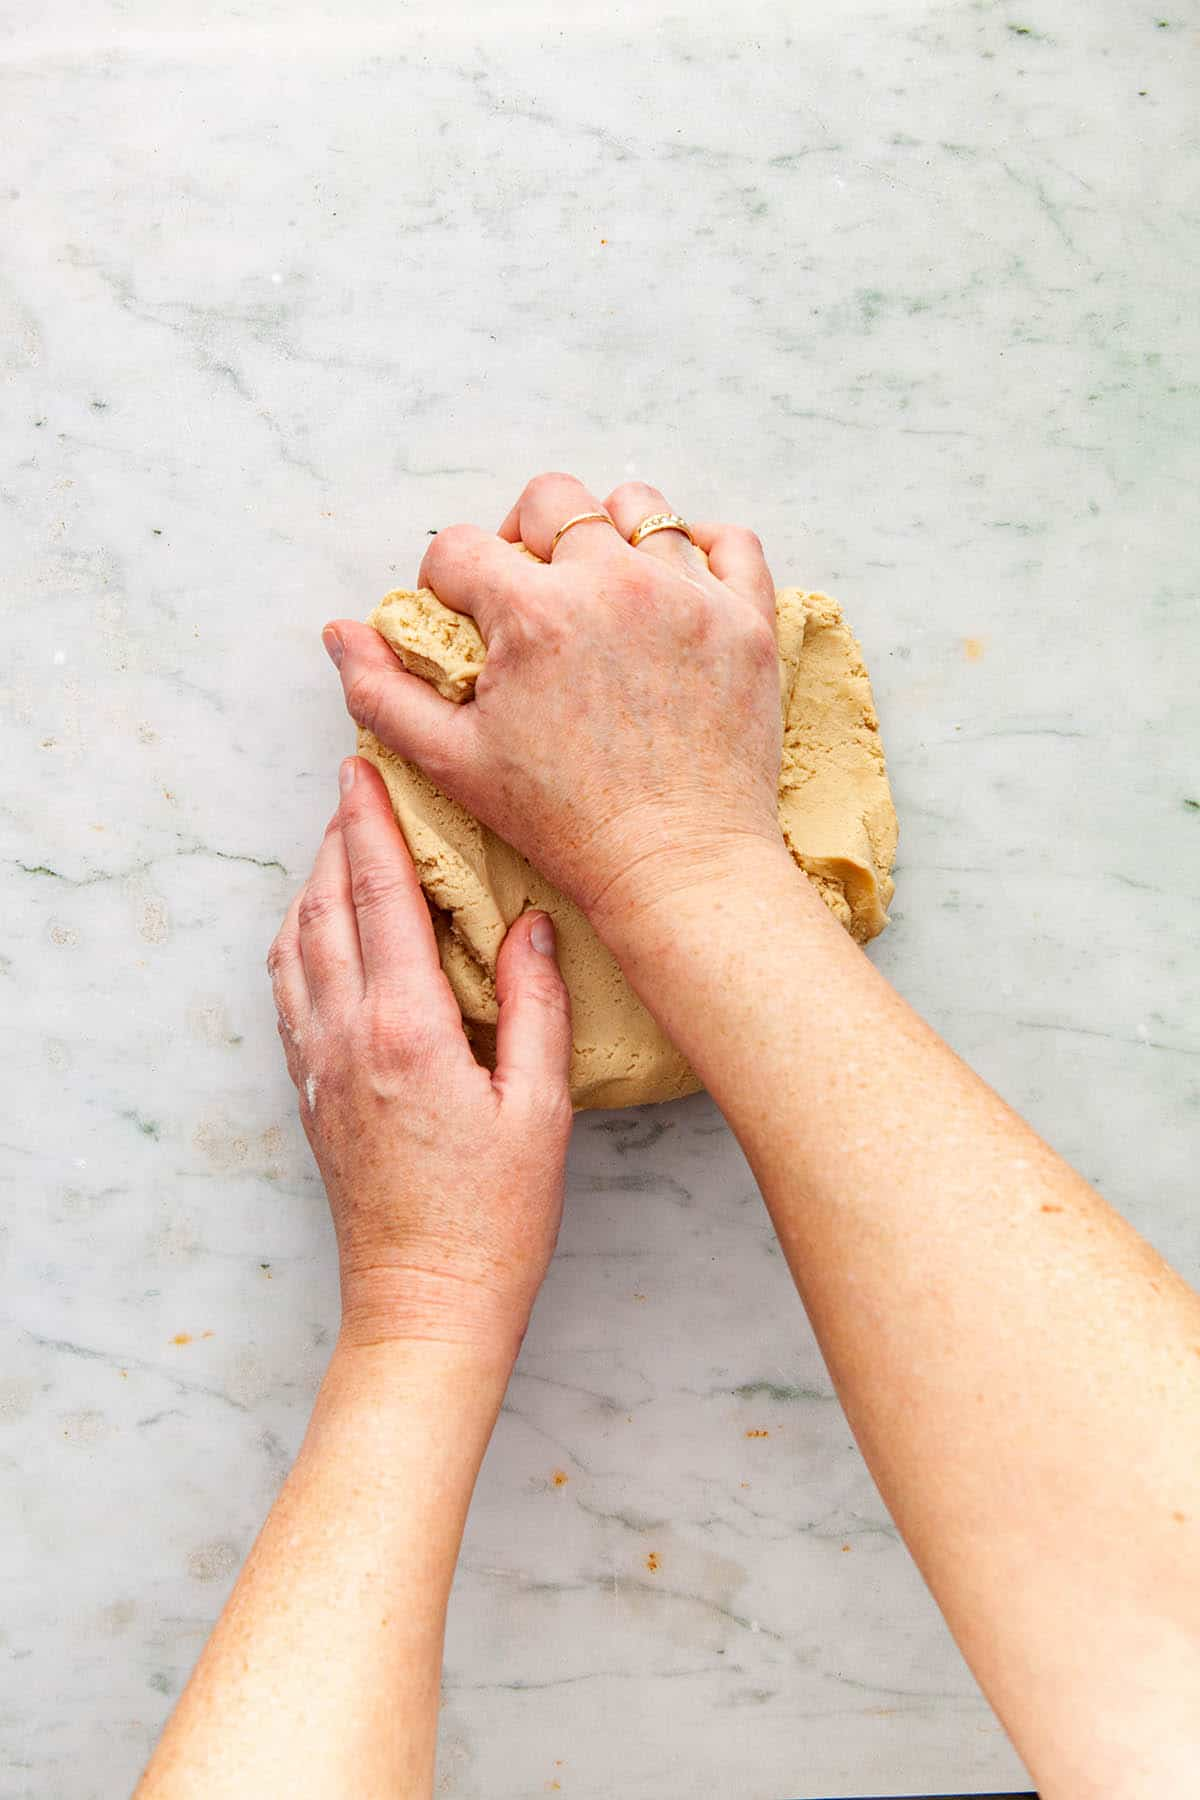 Hands kneading cookie dough.